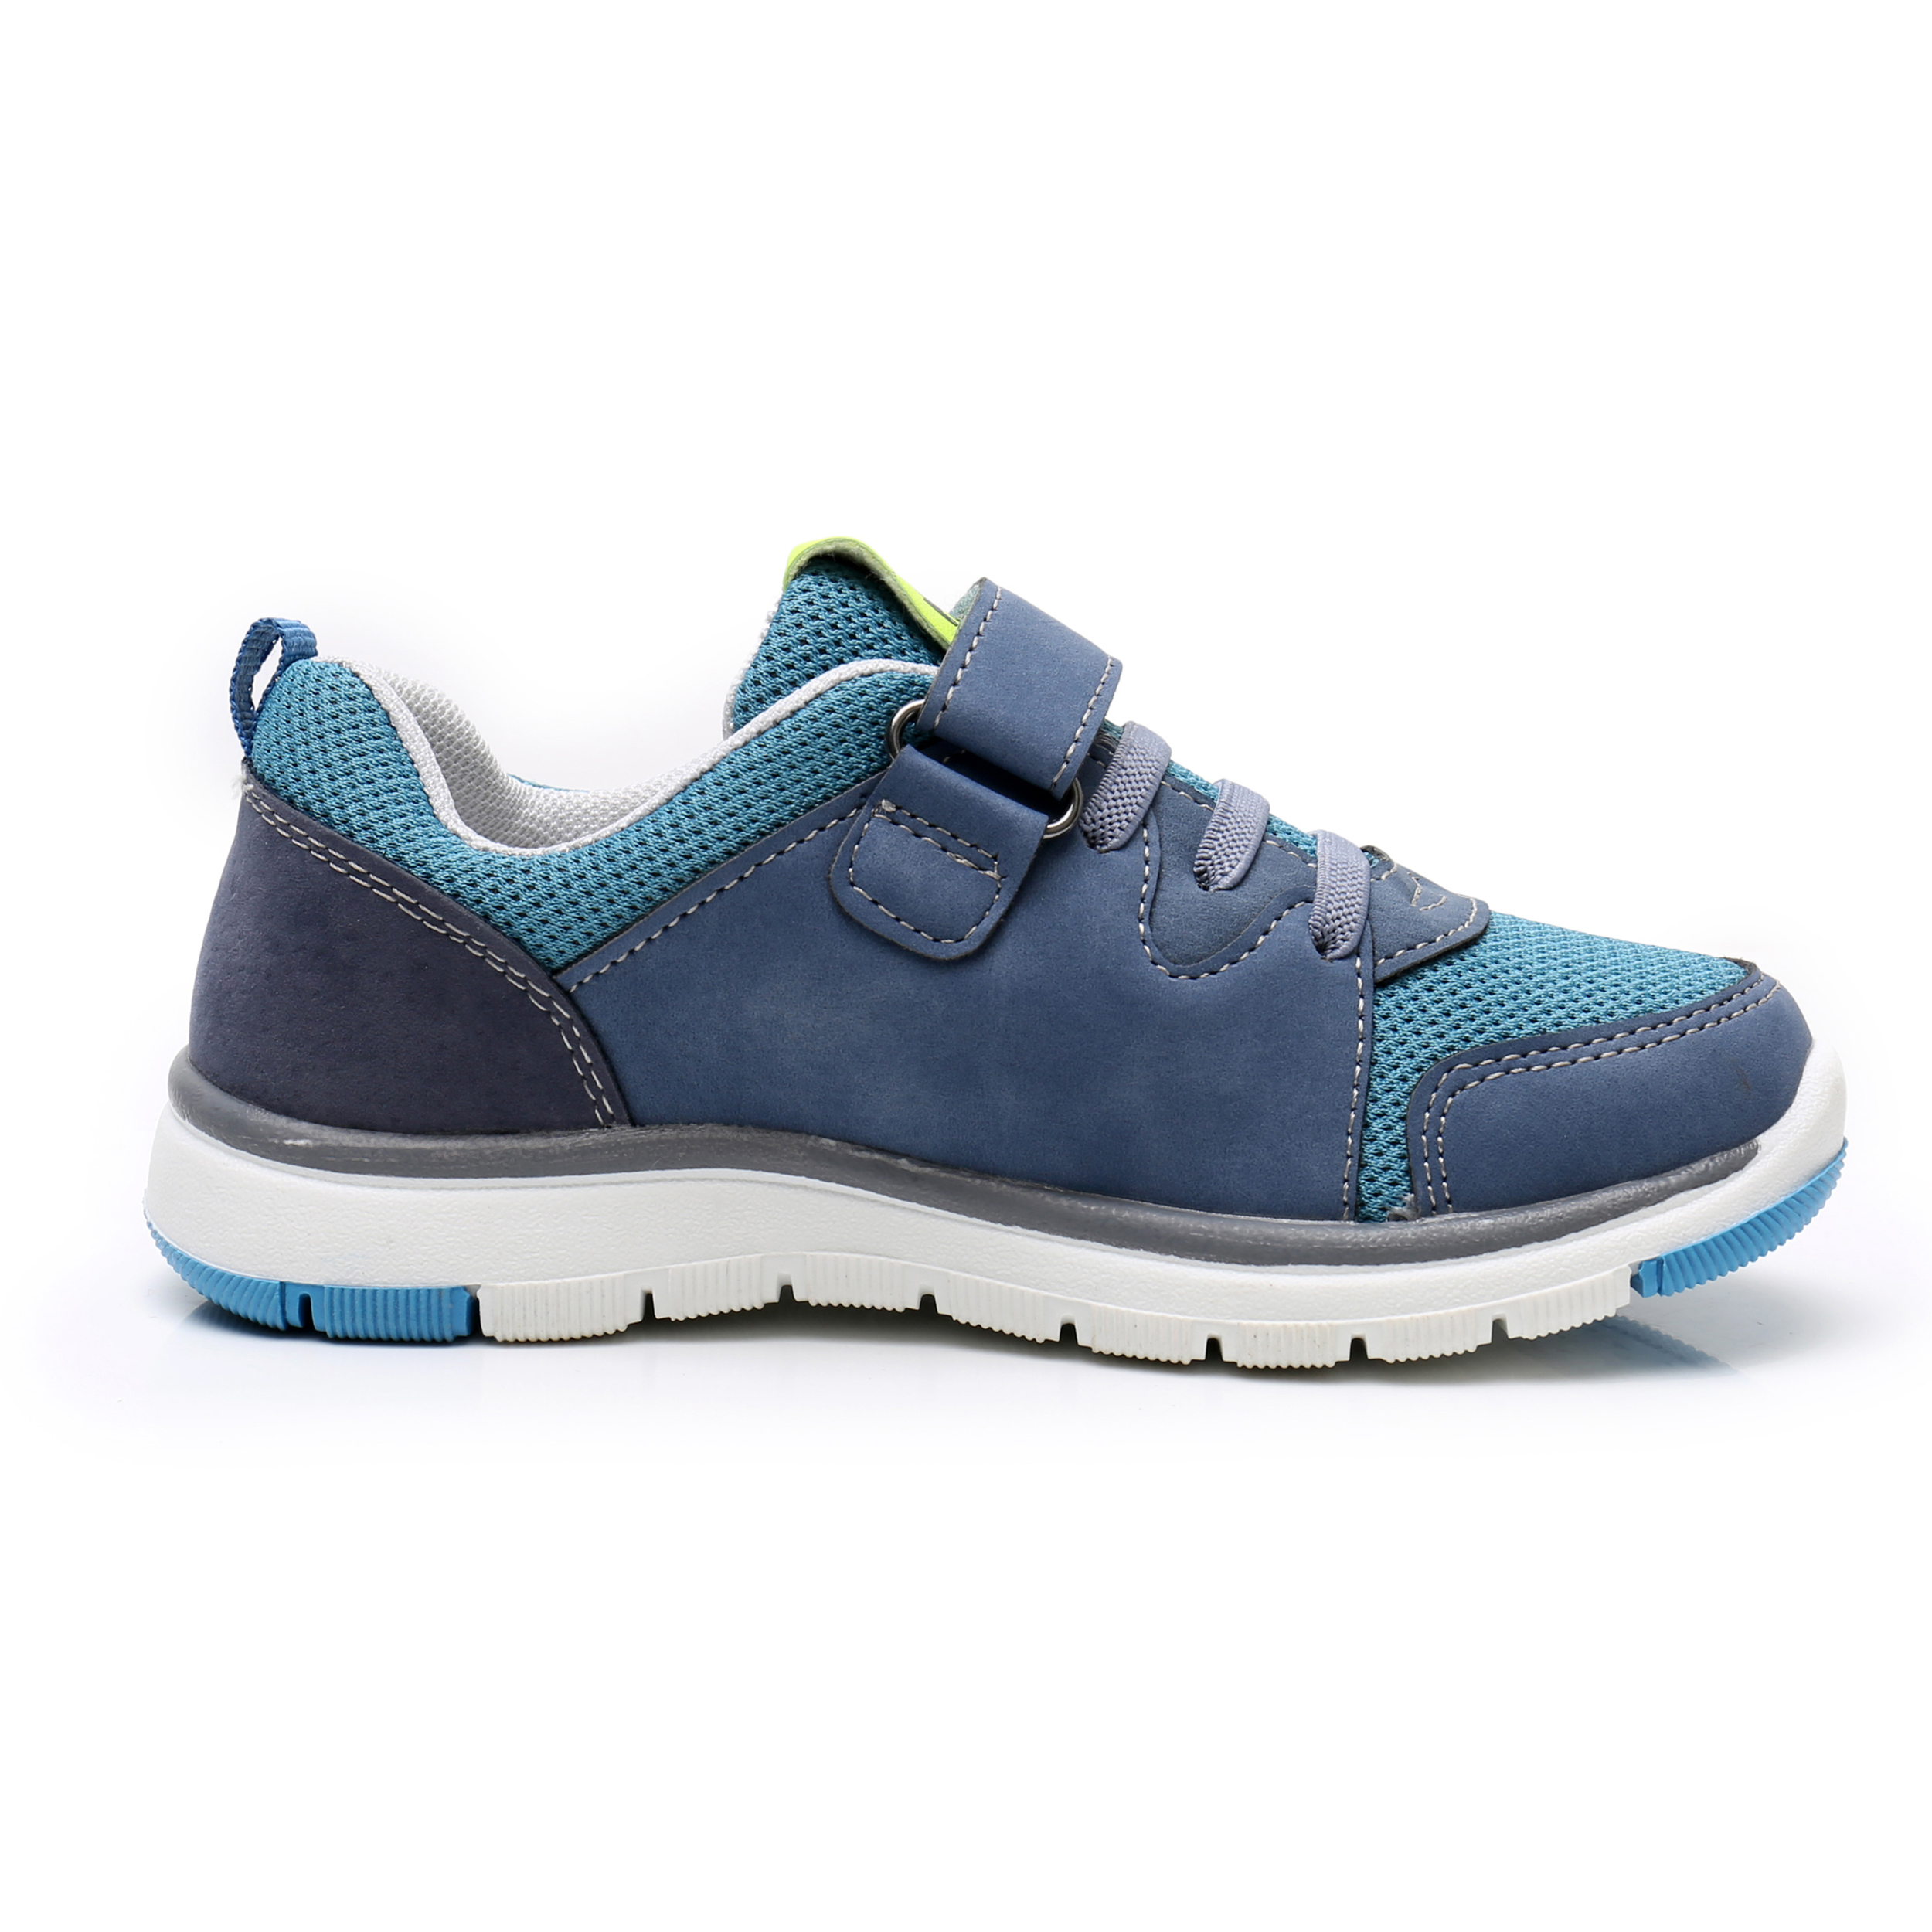 Spring Autumn Boys Casual Shoes PU Leather Toddler Kids Mesh Breathable Boys Sneakers Fashion Sports Trainer EU 26-31